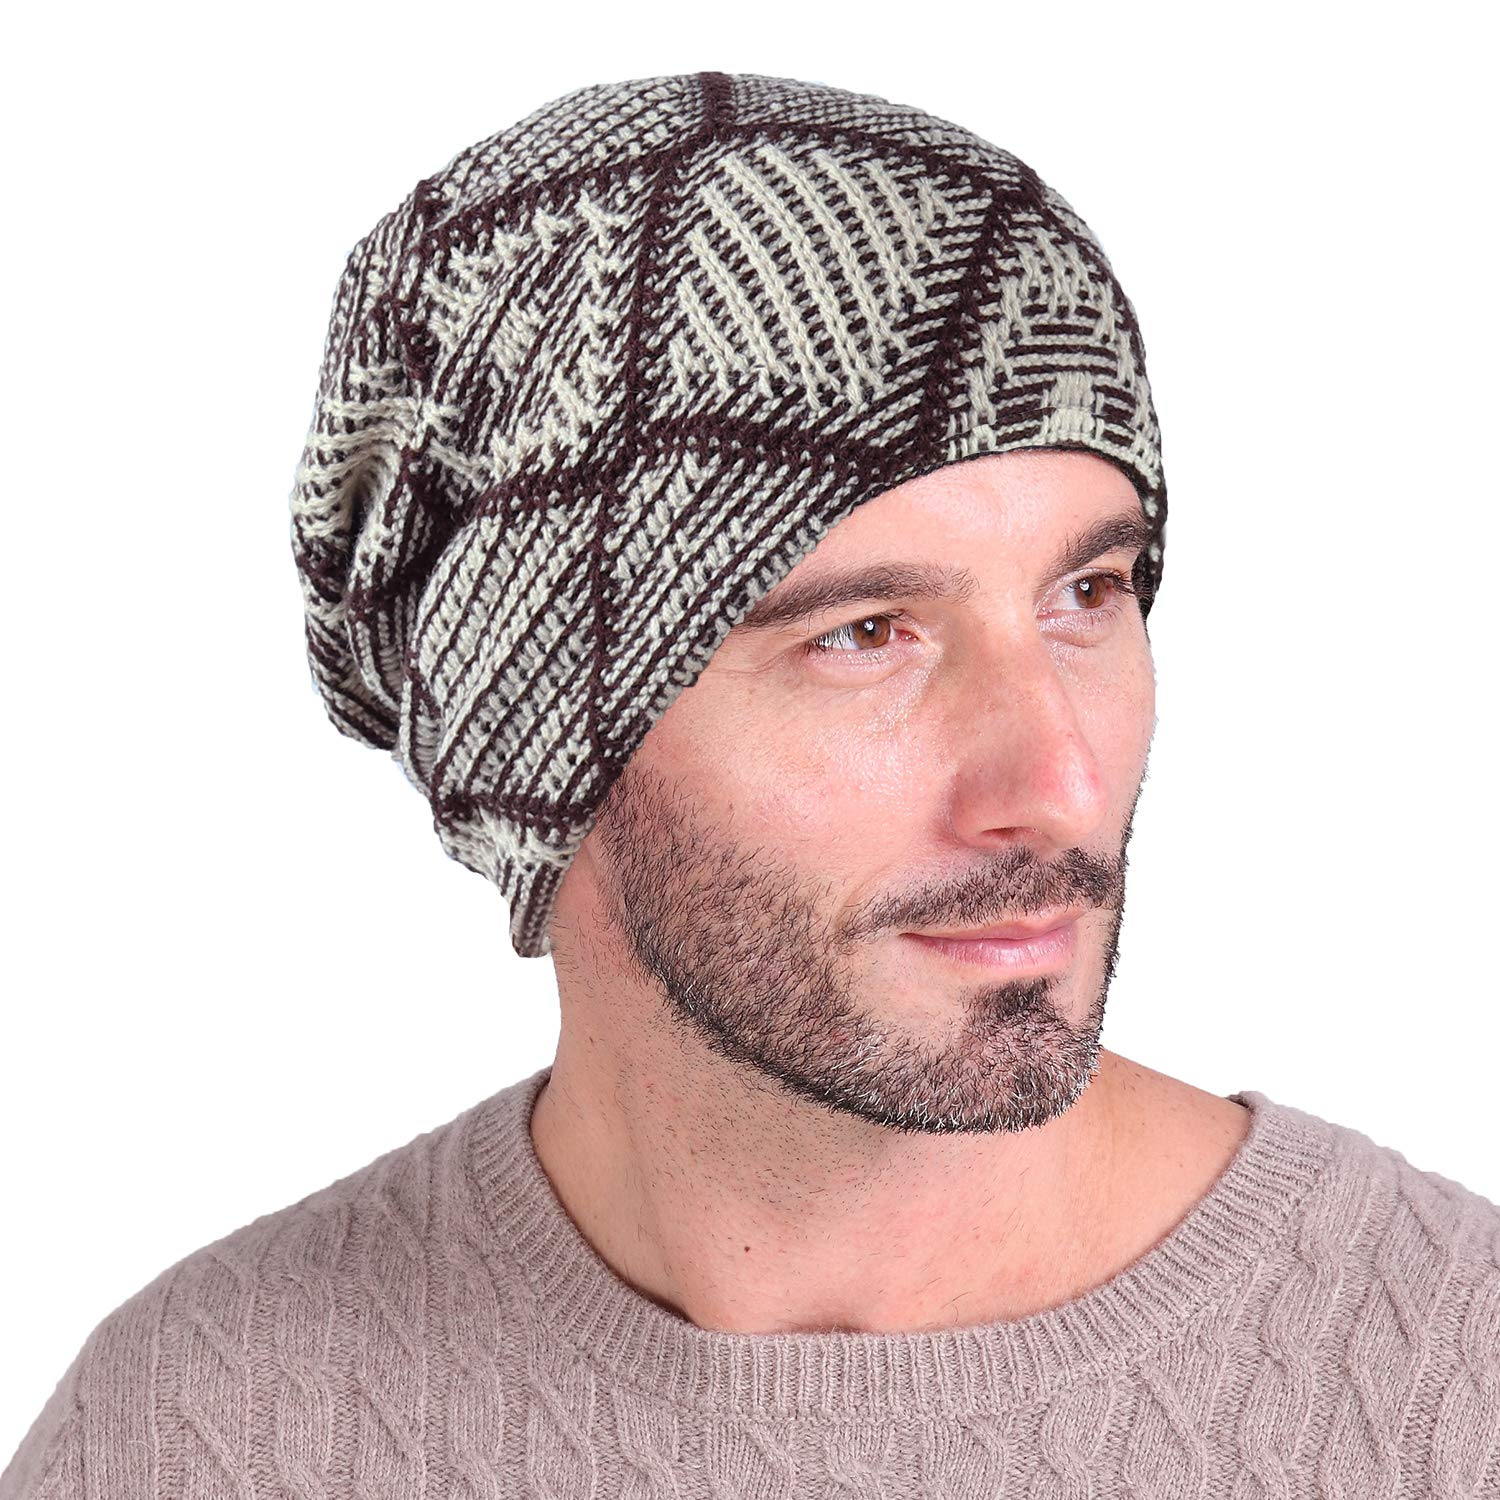 Amazon.com  Luffy Beanie - Winter Trendy Thick Knit Check Skull Cap with  Fleece Lined-Soft Slouchy Stretch Wool hat for Men and Women (Beige-Check)   ... ce92d3aef19